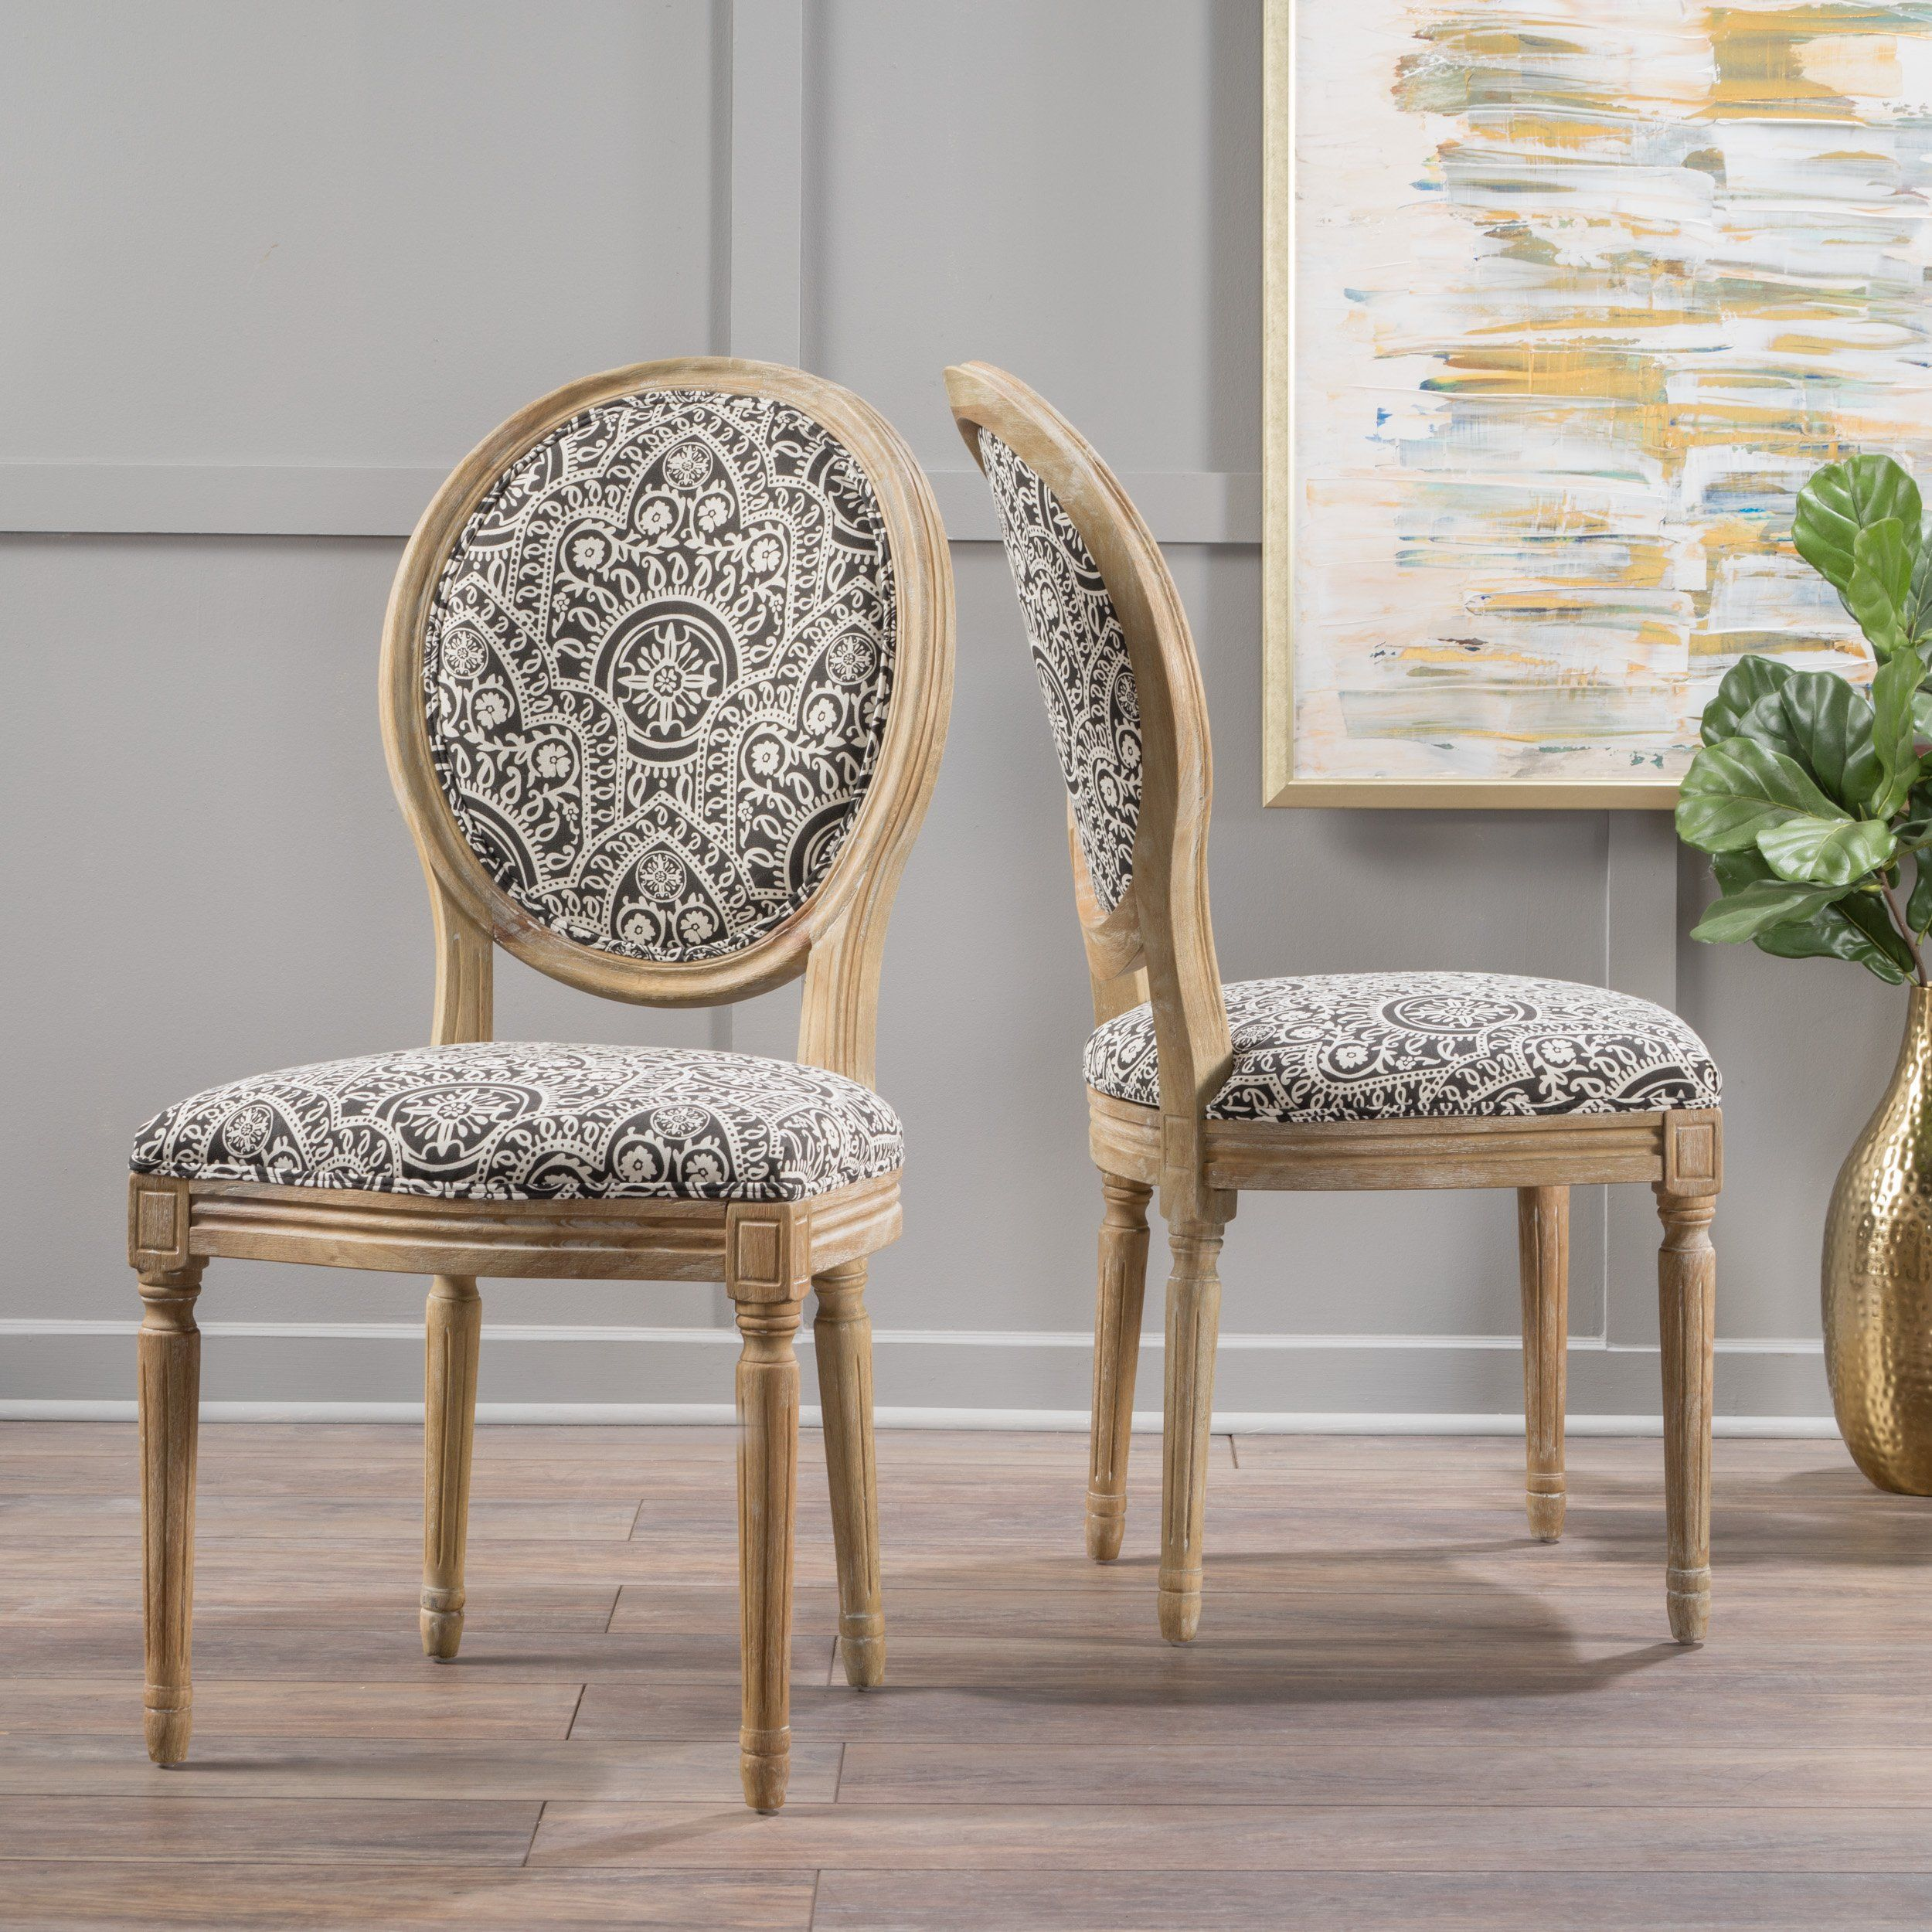 Surprising Hawthorne Black And White Patterned Fabric Dining Chair Set Dailytribune Chair Design For Home Dailytribuneorg